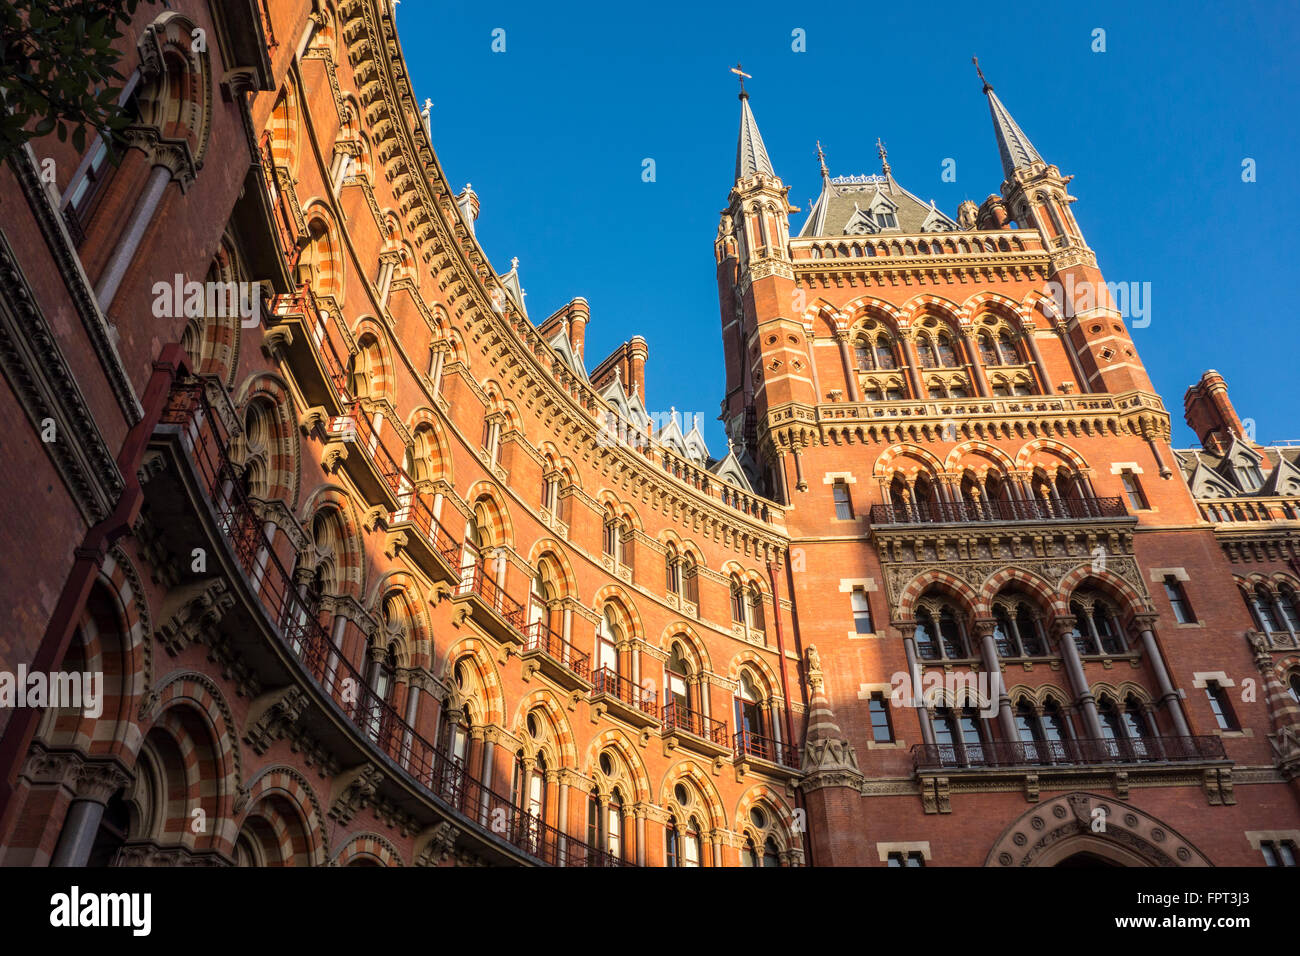 Exterior of Victorian Gothic style St Pancras Hotel or Midland Hotel by George Gilbert Scott, London, UK - Stock Image